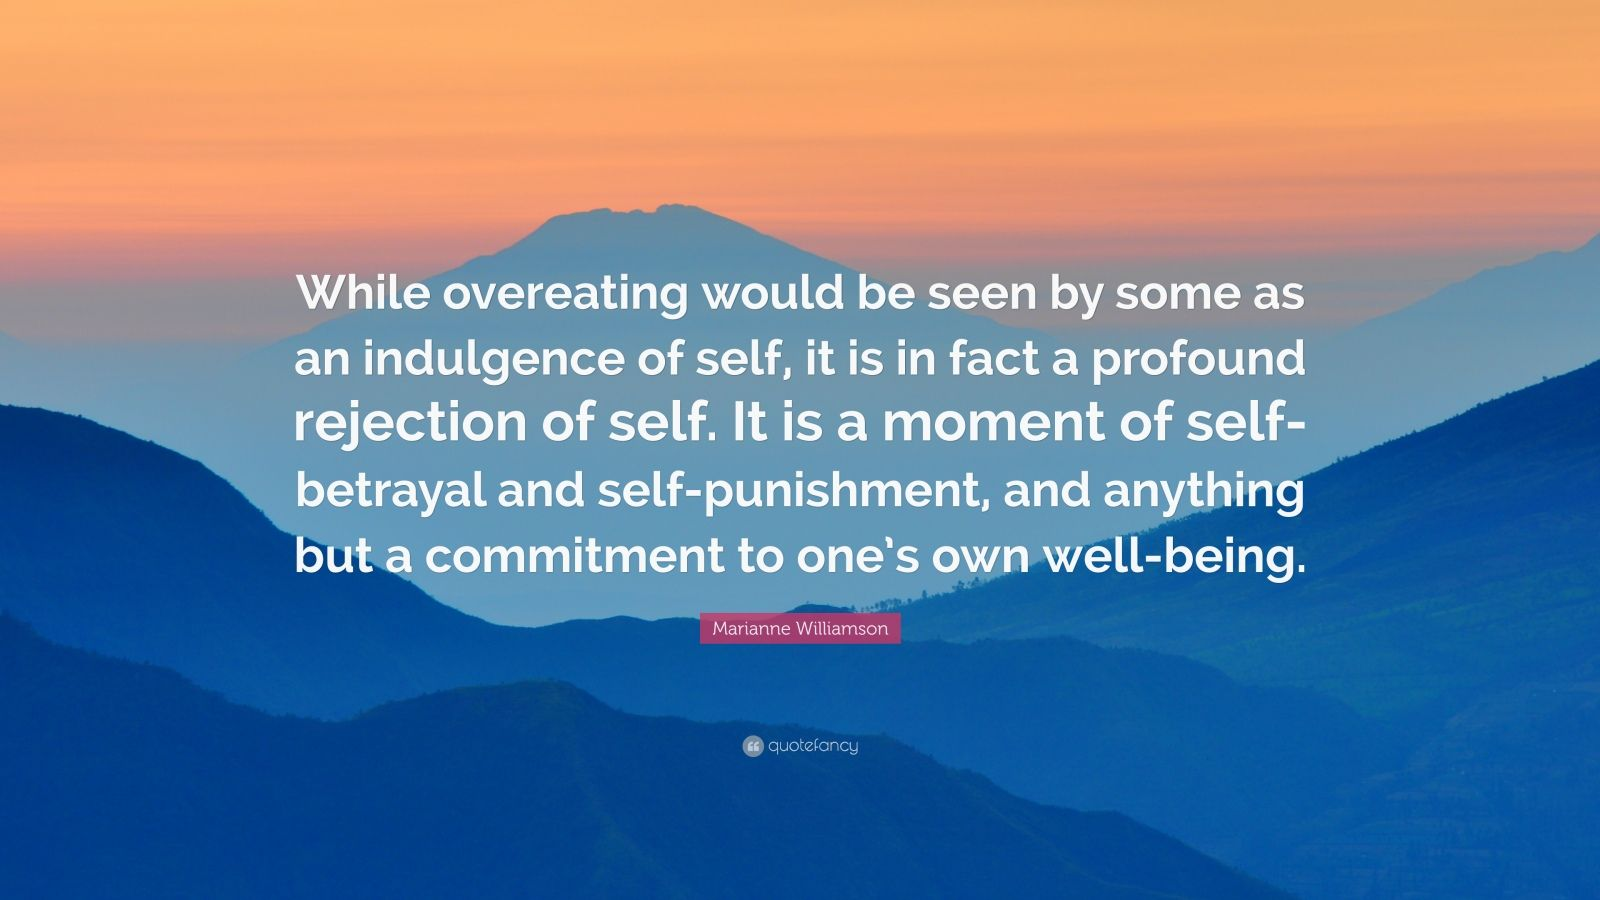 """Marianne Williamson Quote: """"While overeating would be seen by some as an indulgence of self, it is in fact a profound rejection of self. It is a moment of self-betrayal and self-punishment, and anything but a commitment to one's own well-being."""""""